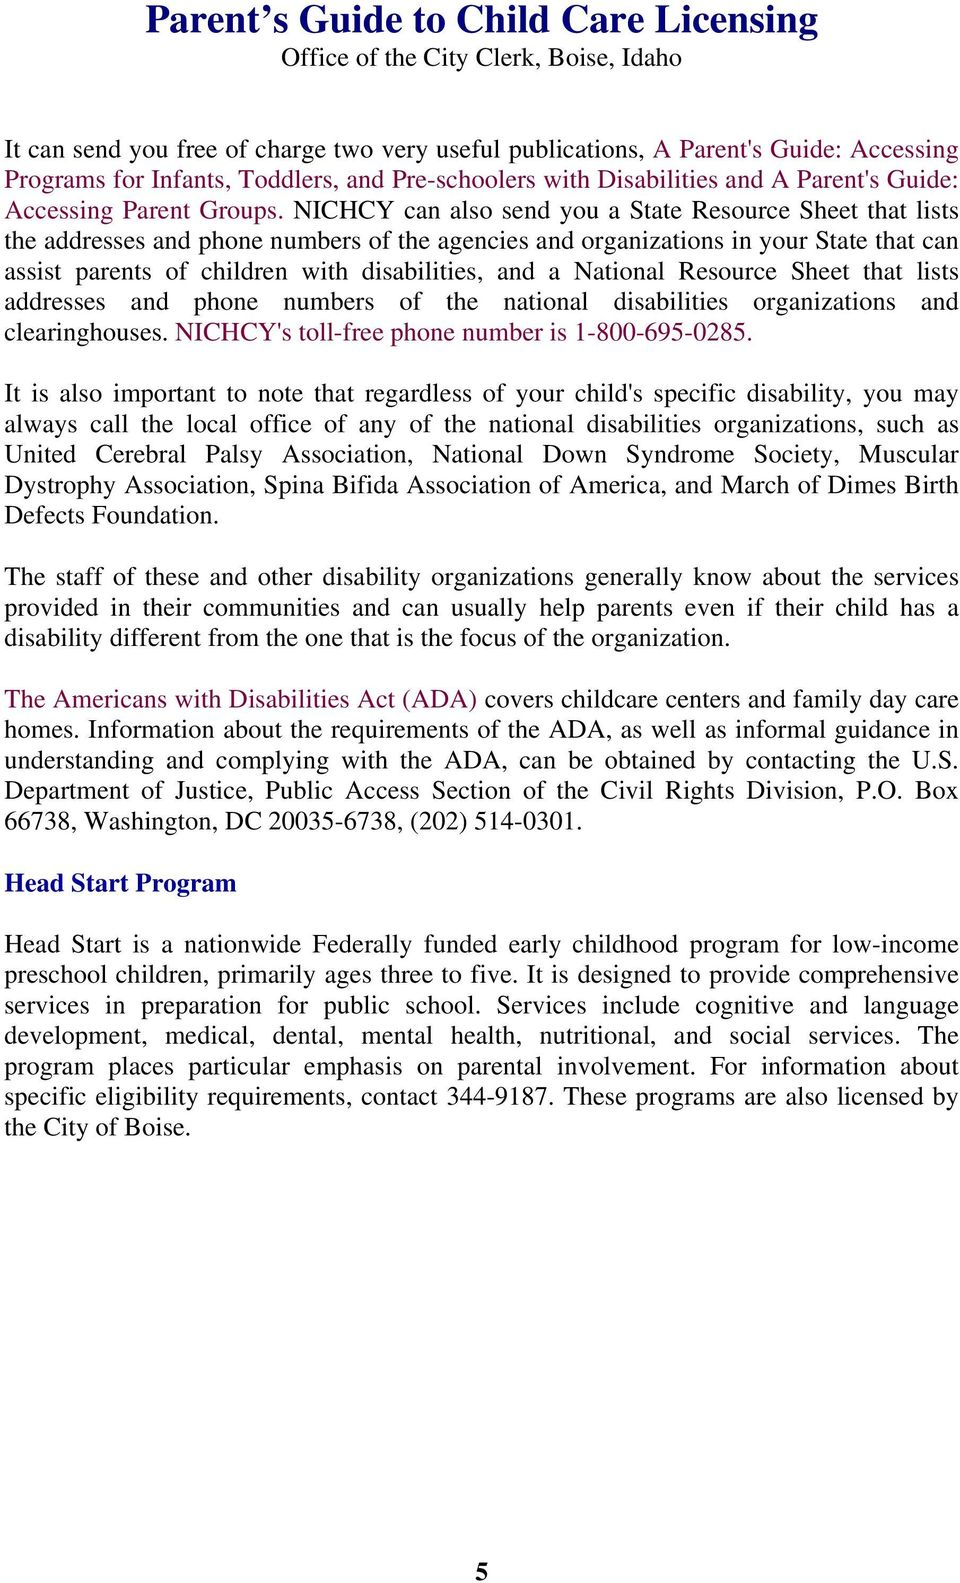 NICHCY can also send you a State Resource Sheet that lists the addresses and phone numbers of the agencies and organizations in your State that can assist parents of children with disabilities, and a